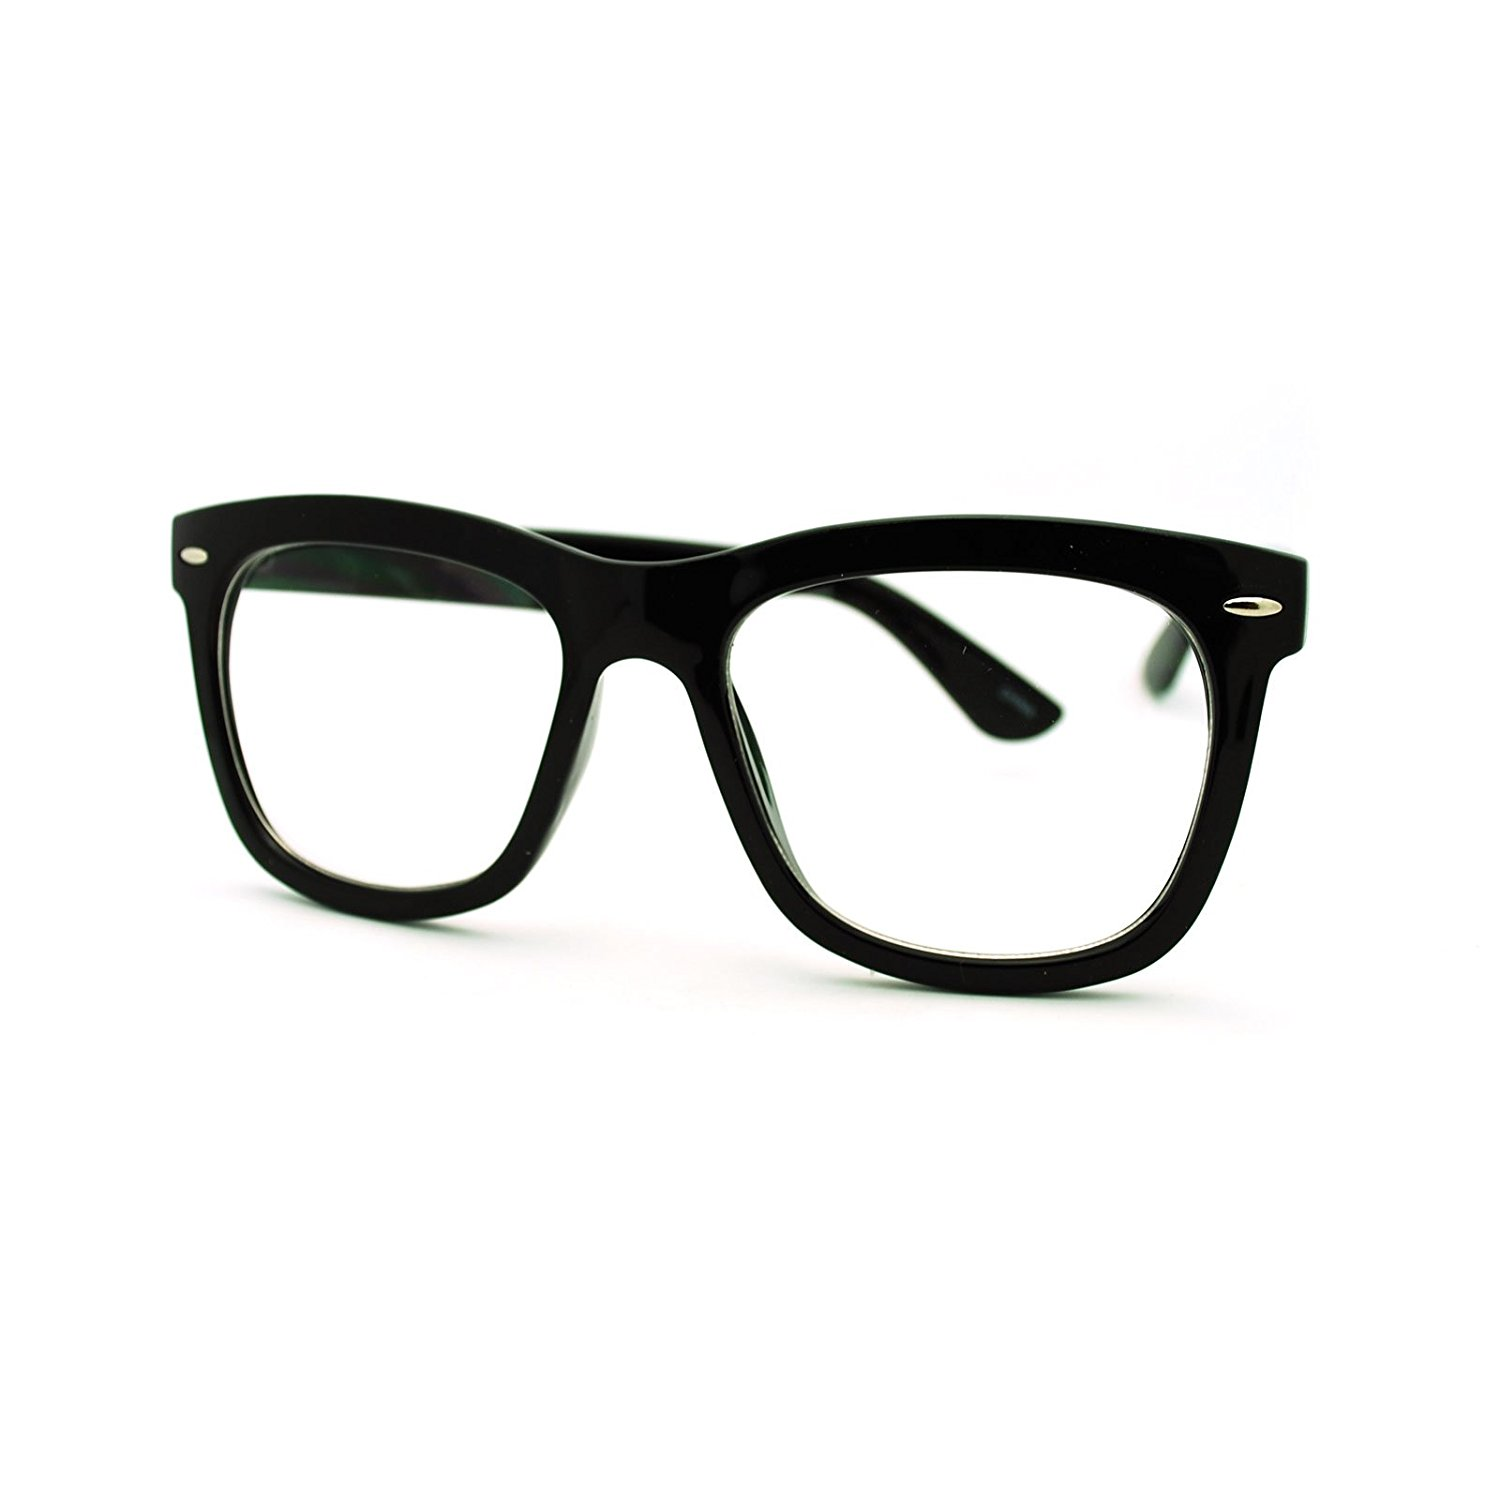 79a51fef9917 Get Quotations · Clear Lens Eyeglasses Oversized Thick Square Frame Nerdy  Glasses